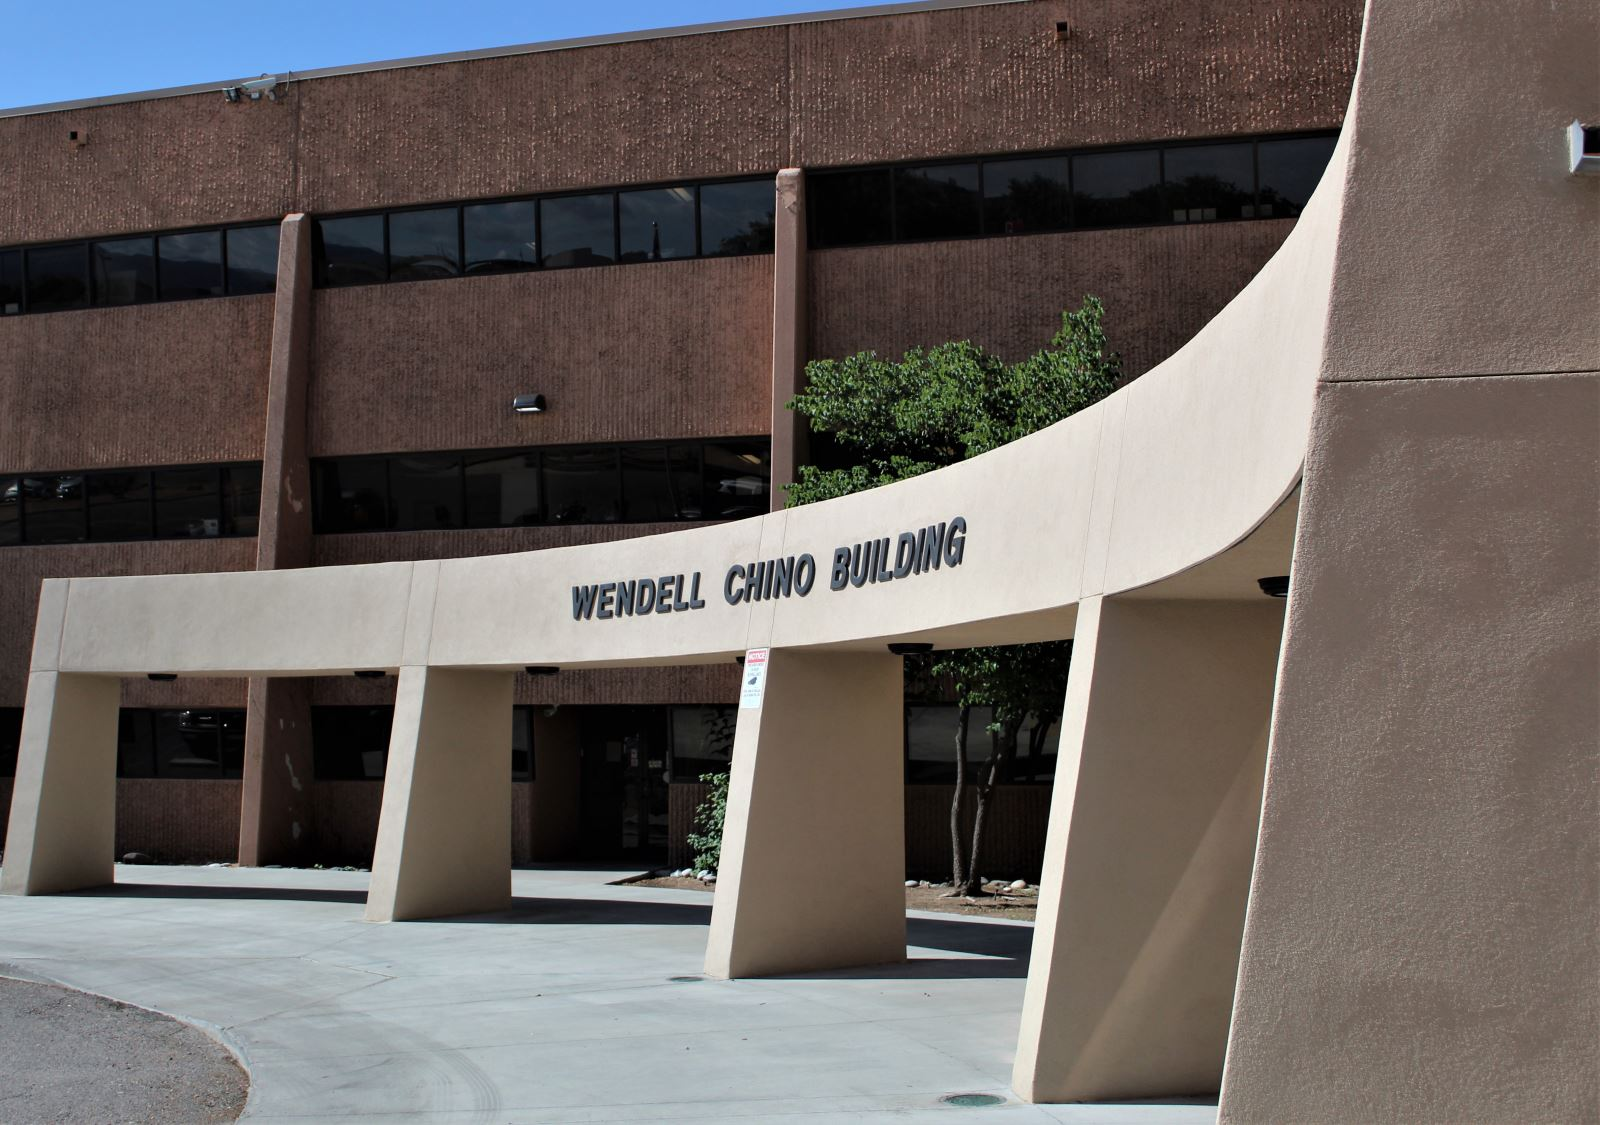 Wendell Chino Building